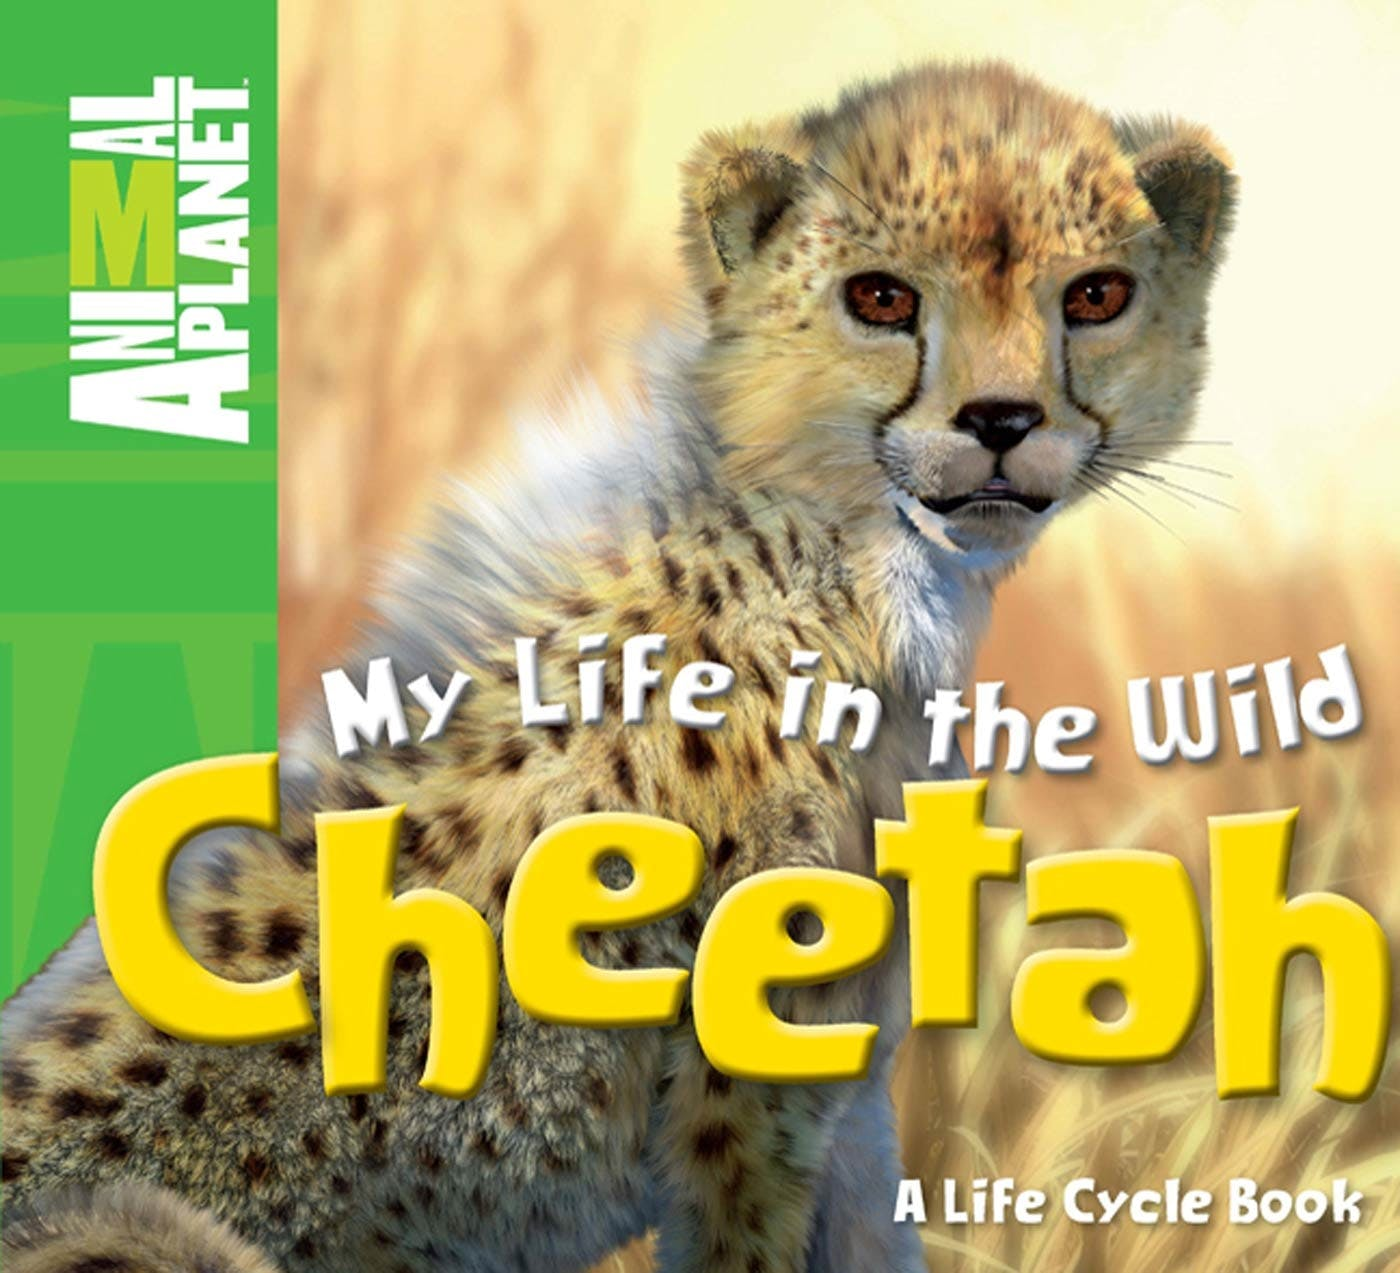 Image of My Life in the Wild: Cheetah